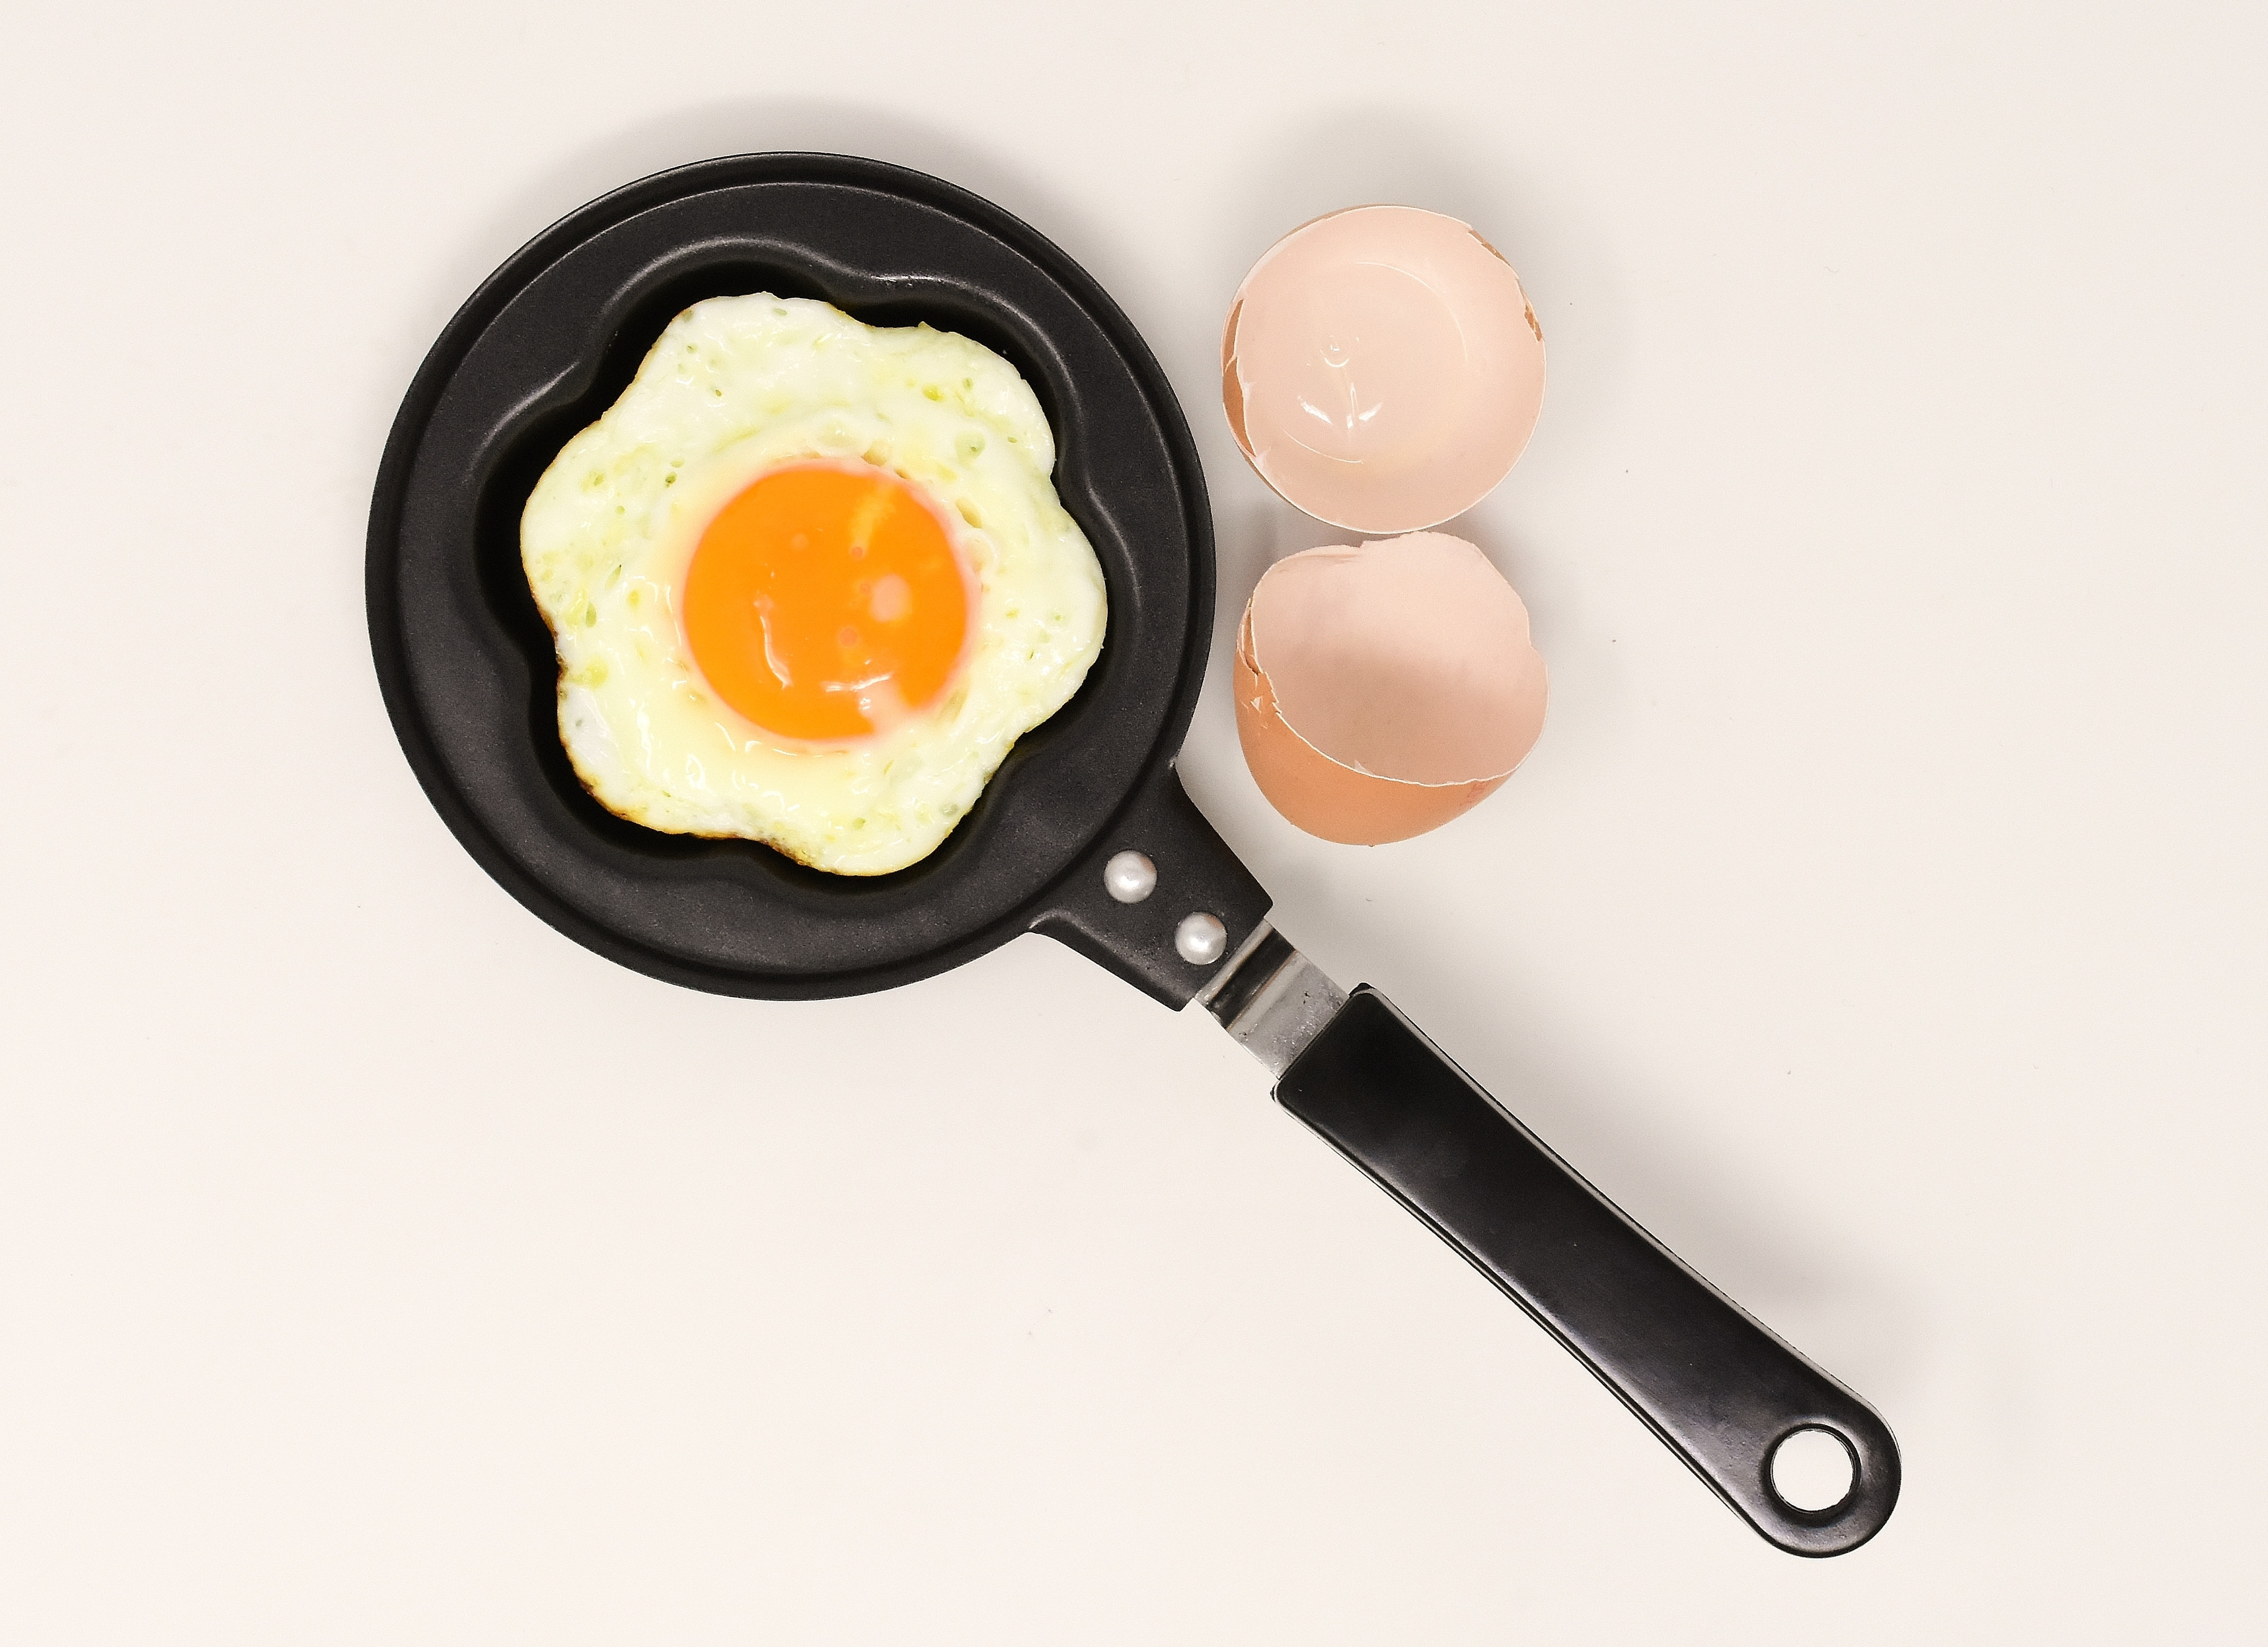 sunny side up egg on frying pan